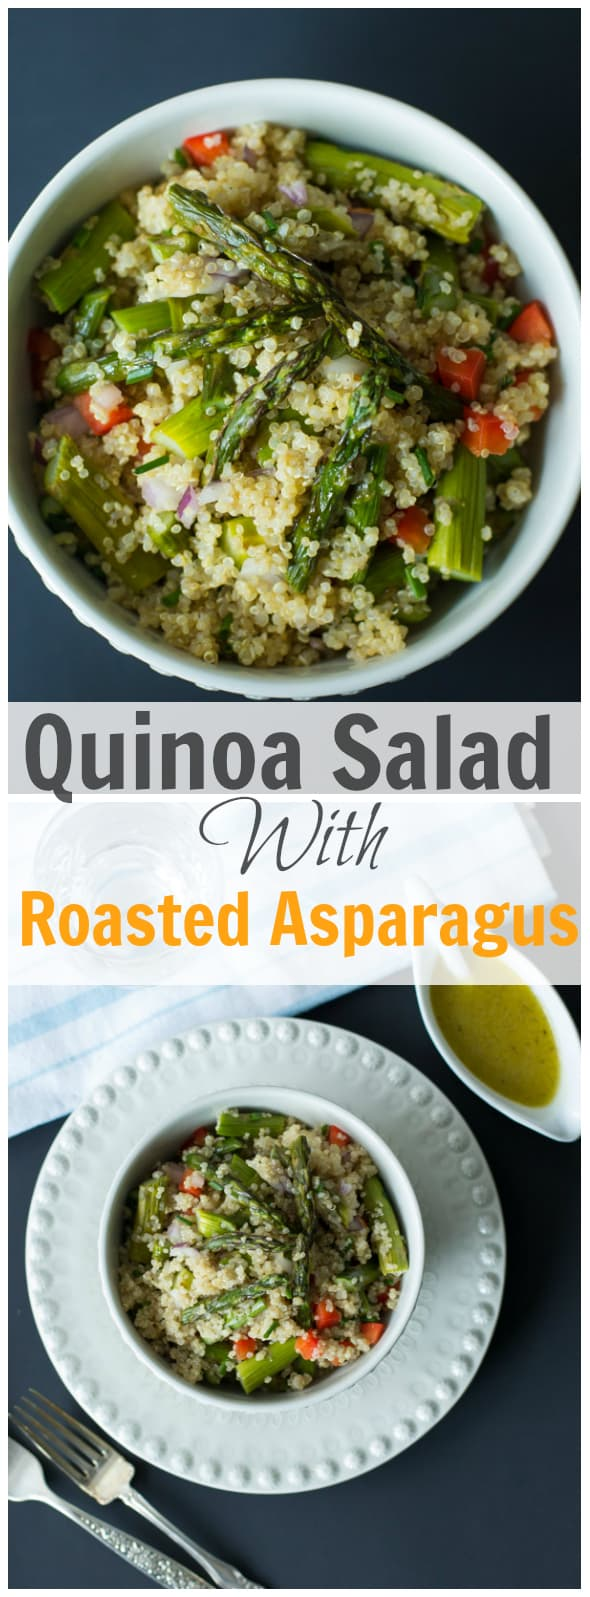 This Quinoa Salad with Roasted Asparagus is quick and easy to make for ...